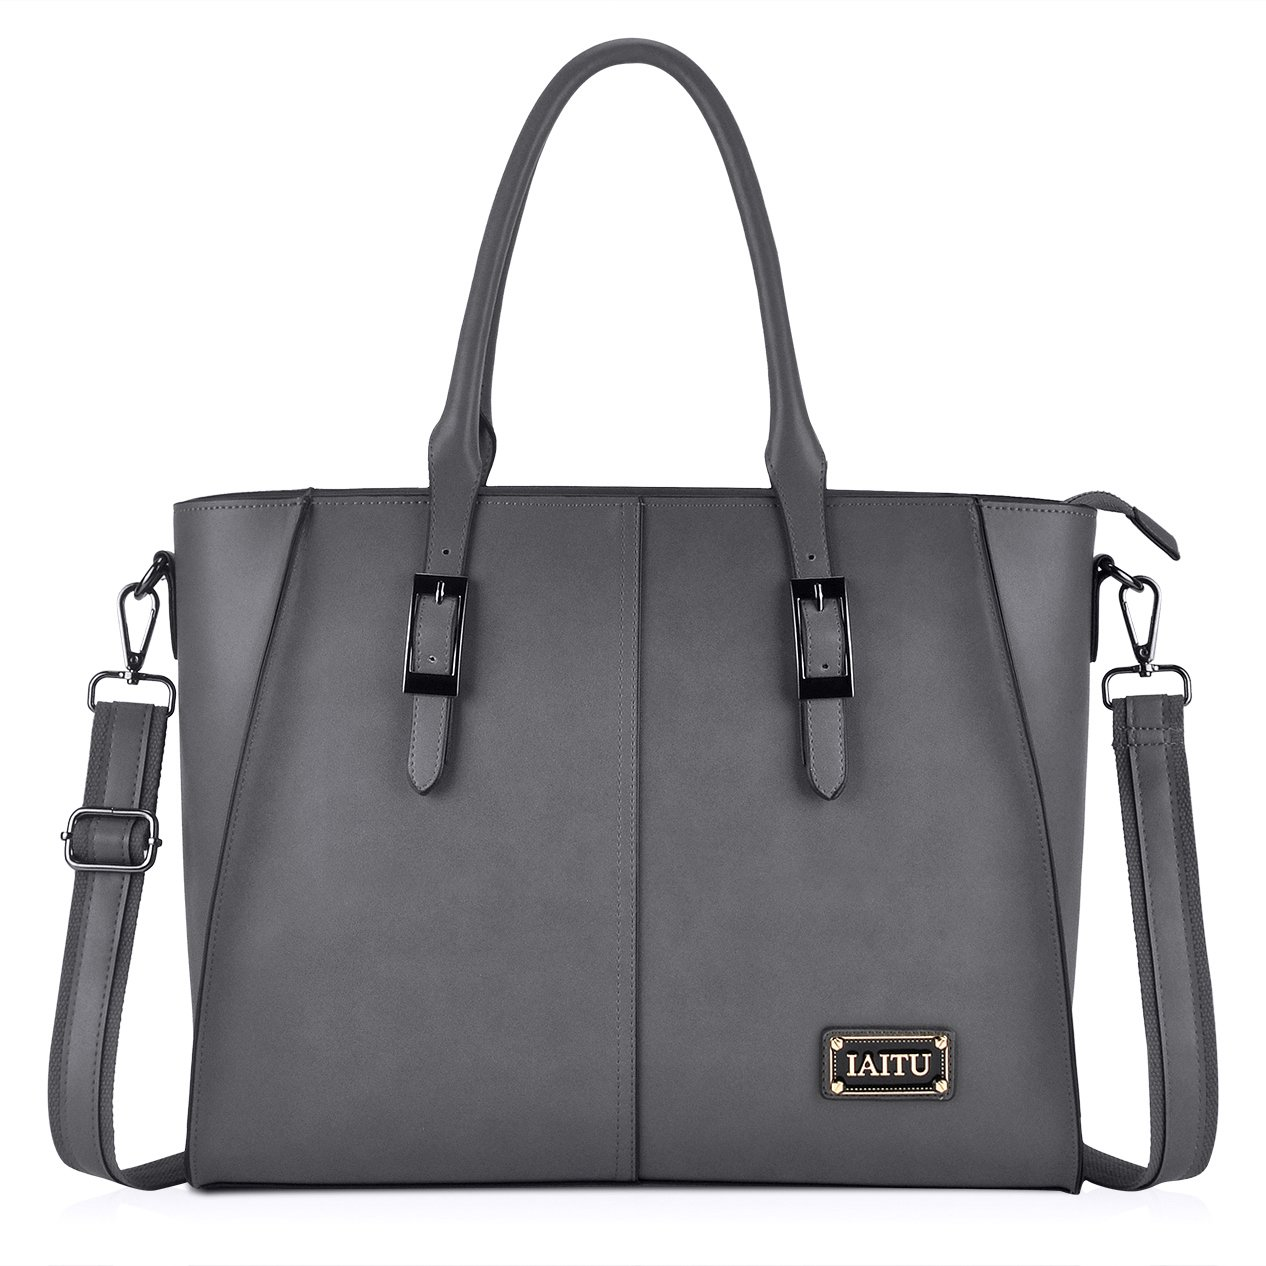 IAITU Laptop Bag, Large Capacity Women Tote Bag Briefcase with Padded Compartment for 15.6 Inch Tablet/MacBook/Ultra-Book (Gray)